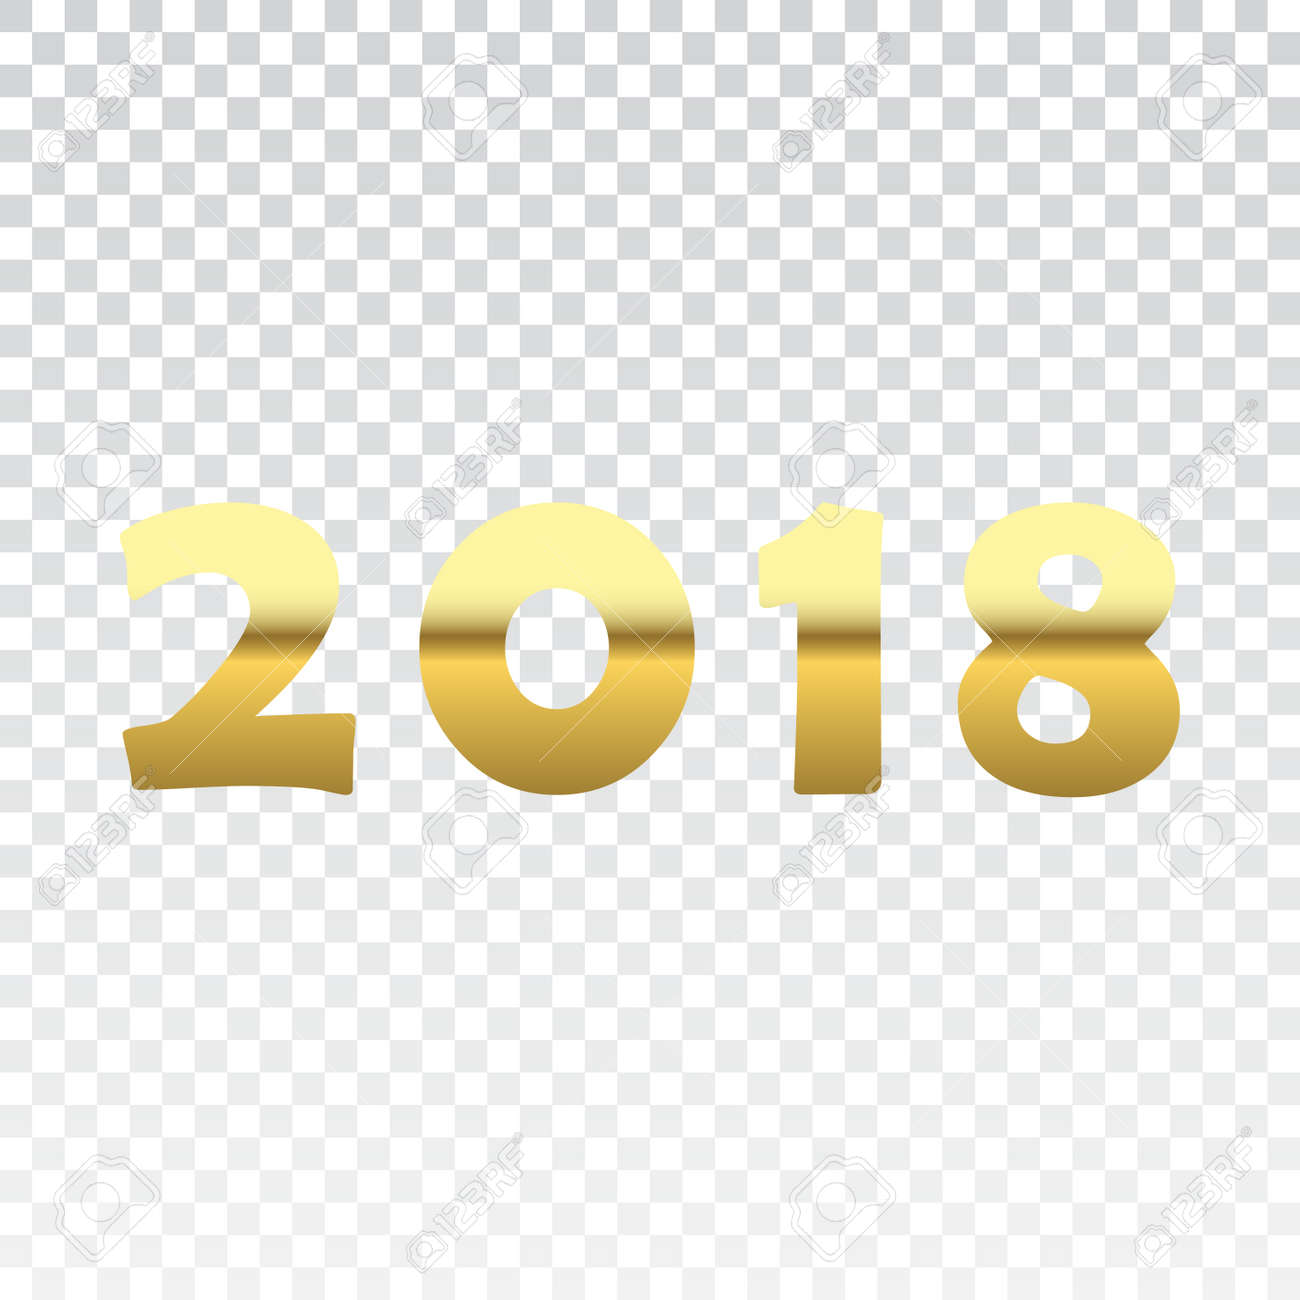 happy new year golden numbers gold numbers 2018 on white transparent background christmas and